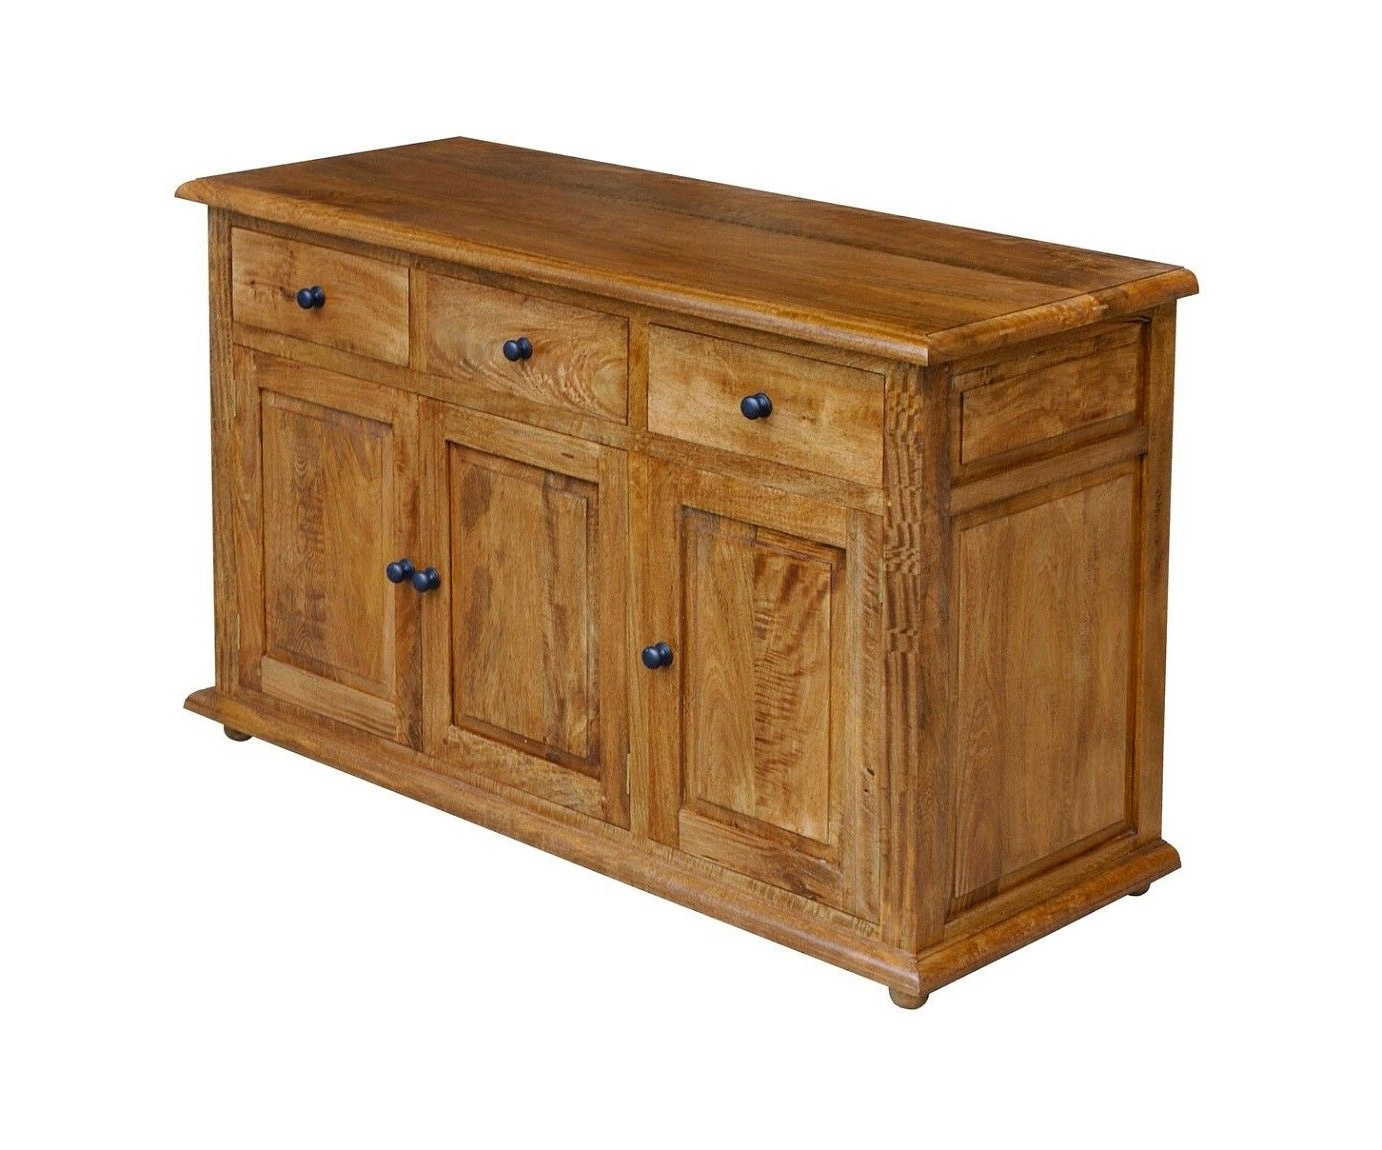 Current Natural Mango Wood Finish Sideboards In 3 Door Sideboard – Solid Mango Wood Sjs Provence Furniture Range (View 7 of 20)